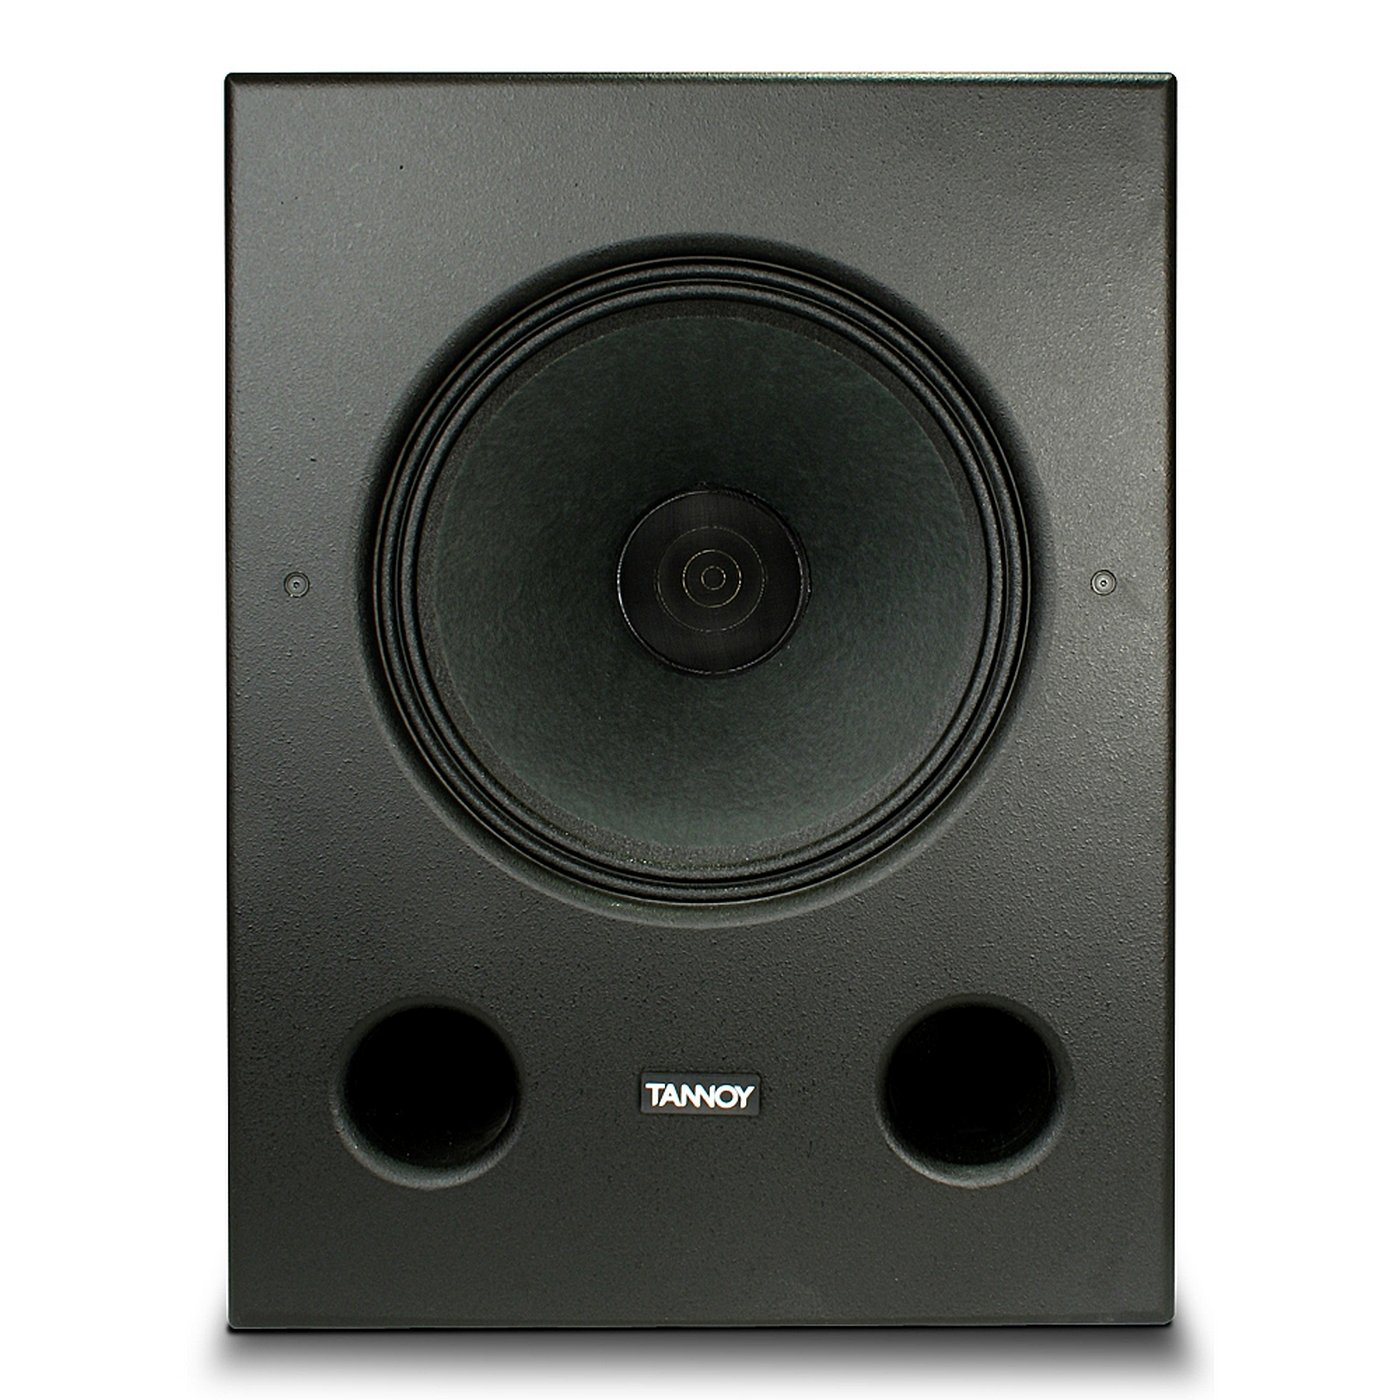 Tannoy DC12i   High Power 12 inch Dual Concentric Custom Install Loudspeaker by Tannoy (Image #2)